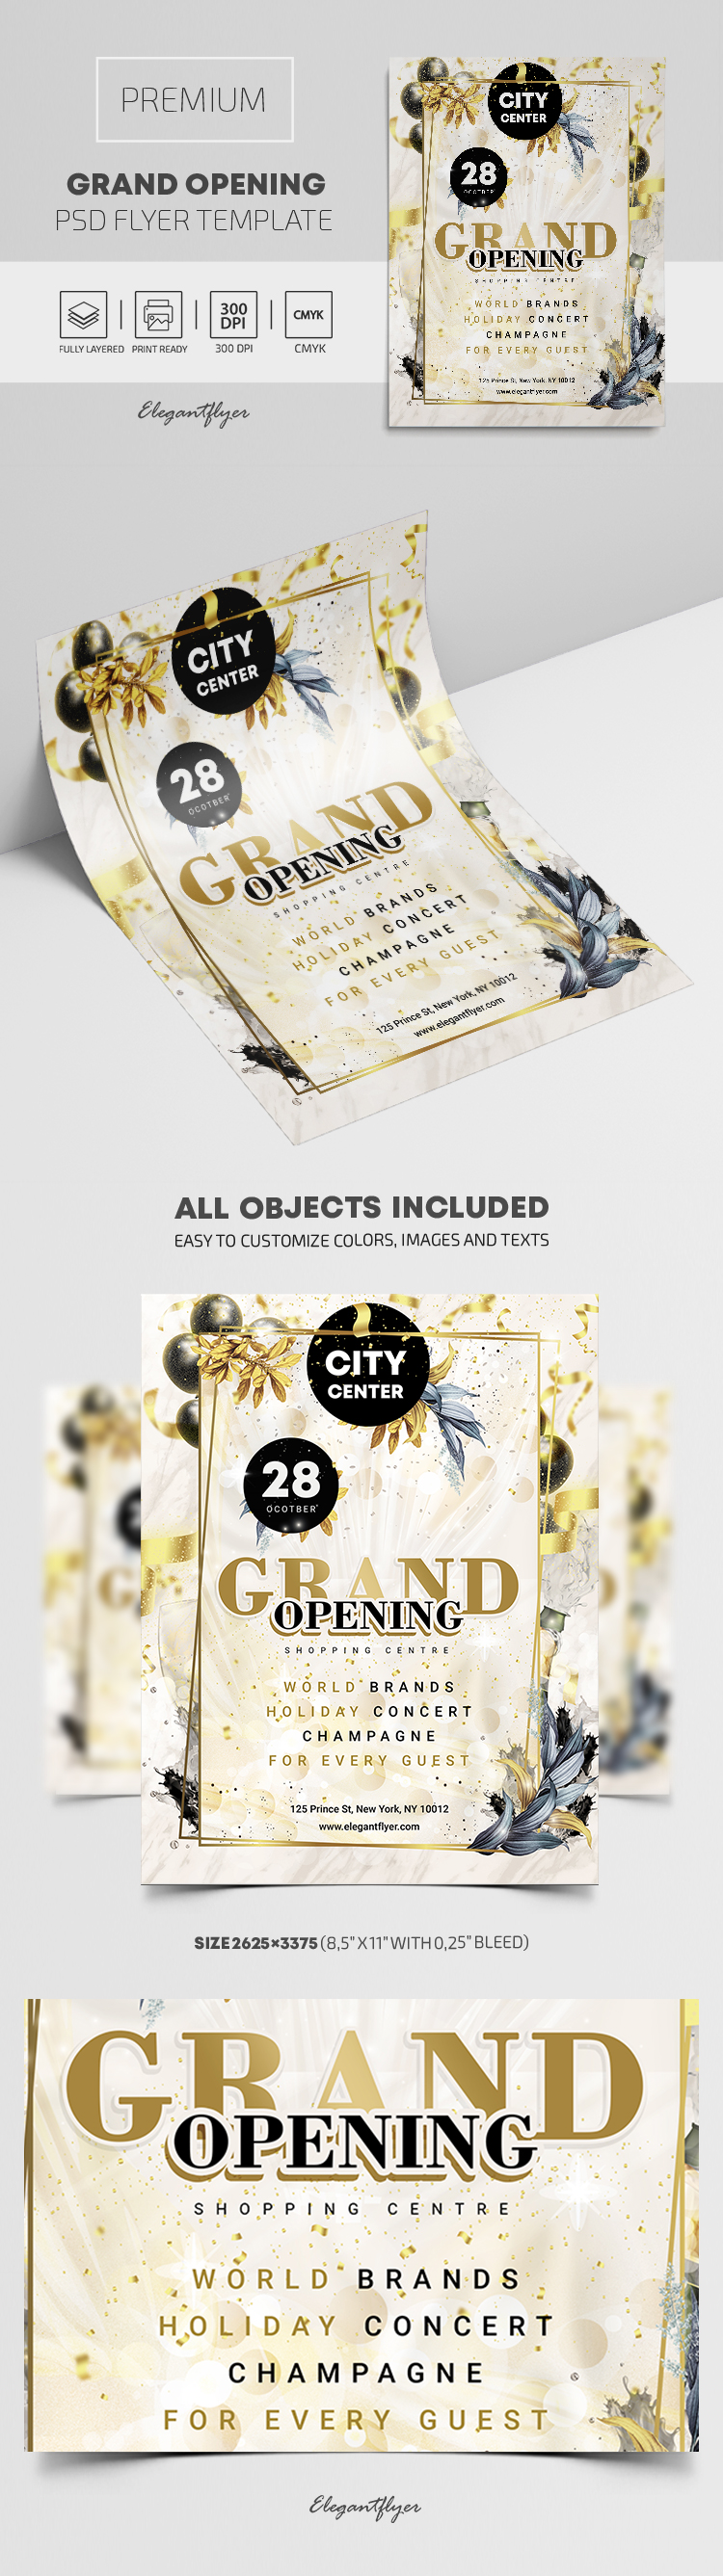 Shopping Centre. Grand Opening! – Premium PSD Flyer Template